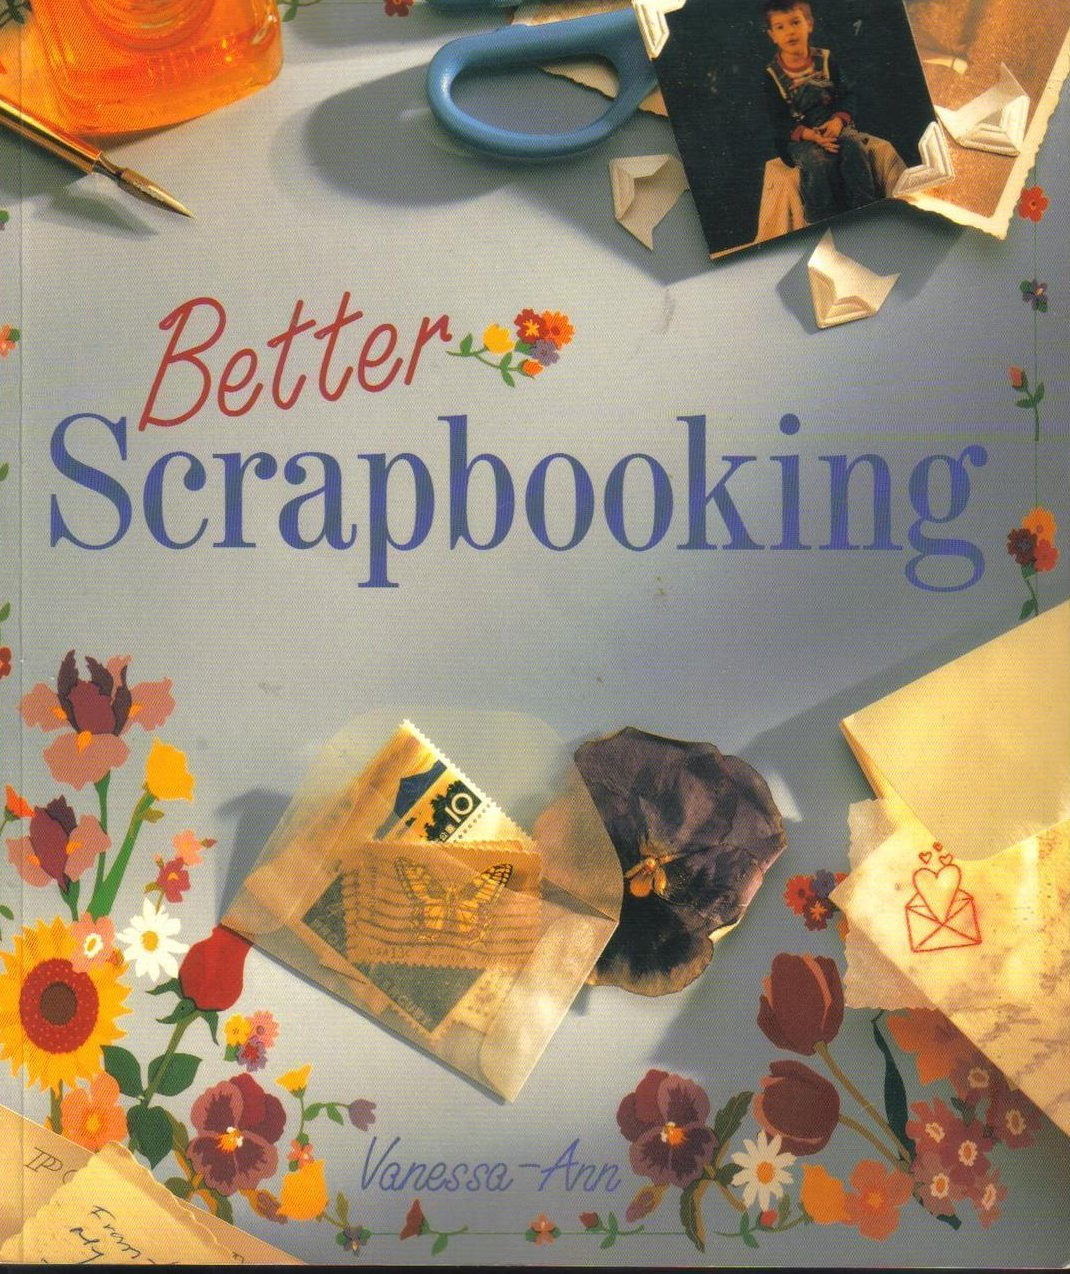 Image 0 of Better Scrapbooking Vanessa-Ann Book Crafts